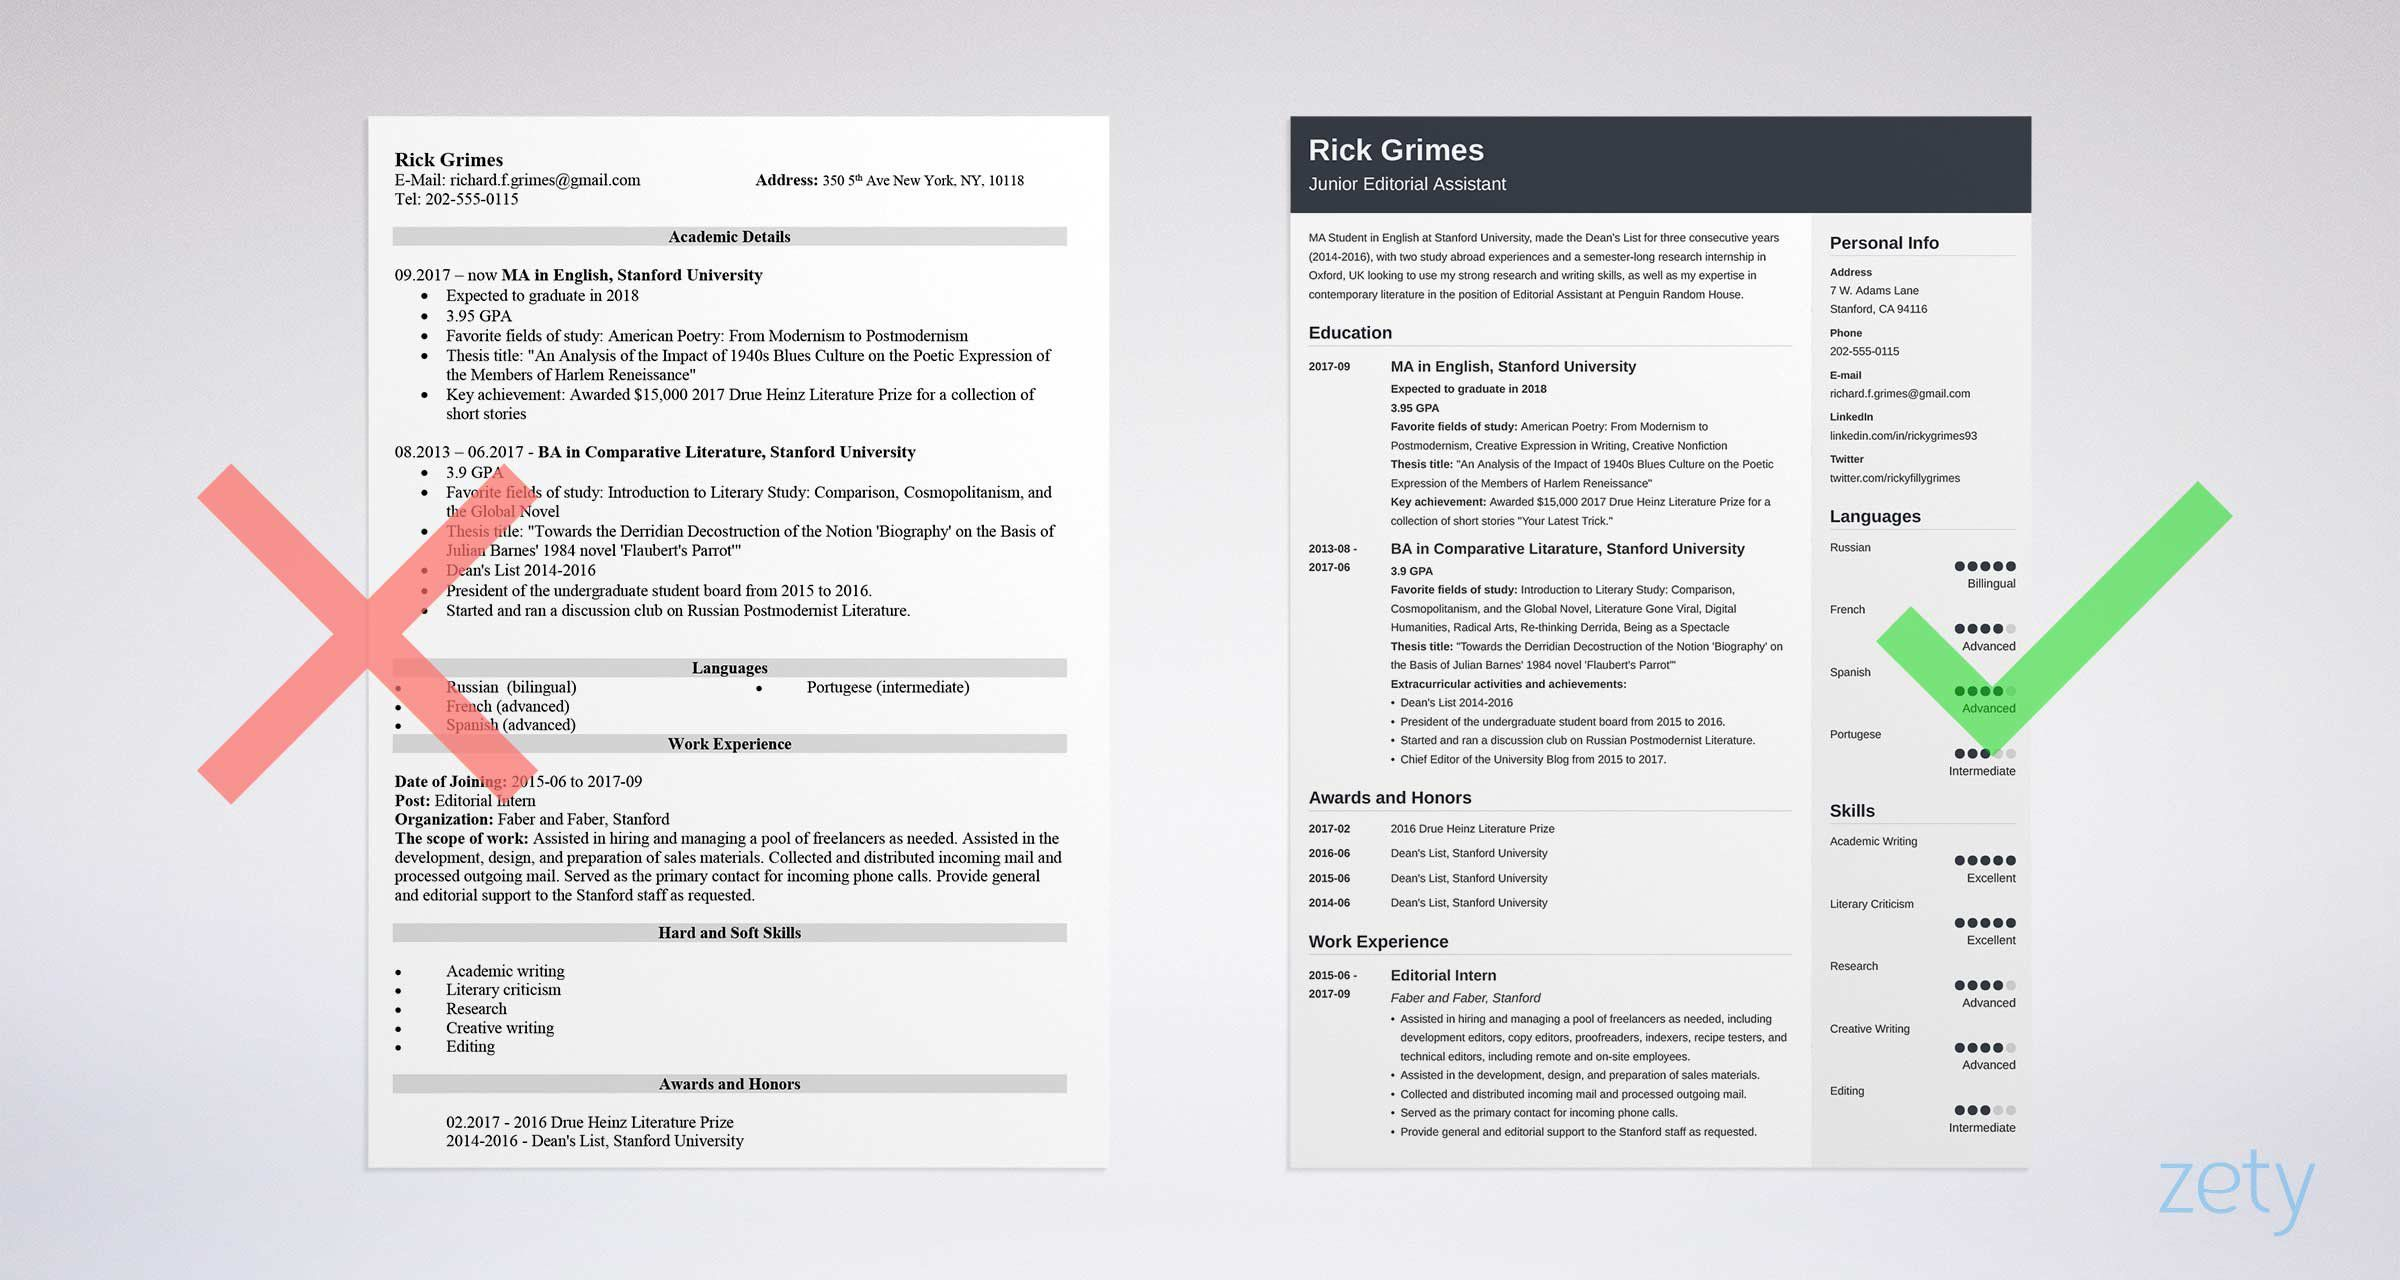 008 Fascinating Resume Template For Student High Def  Students School Internship Google Doc Openoffice Free DownloadFull